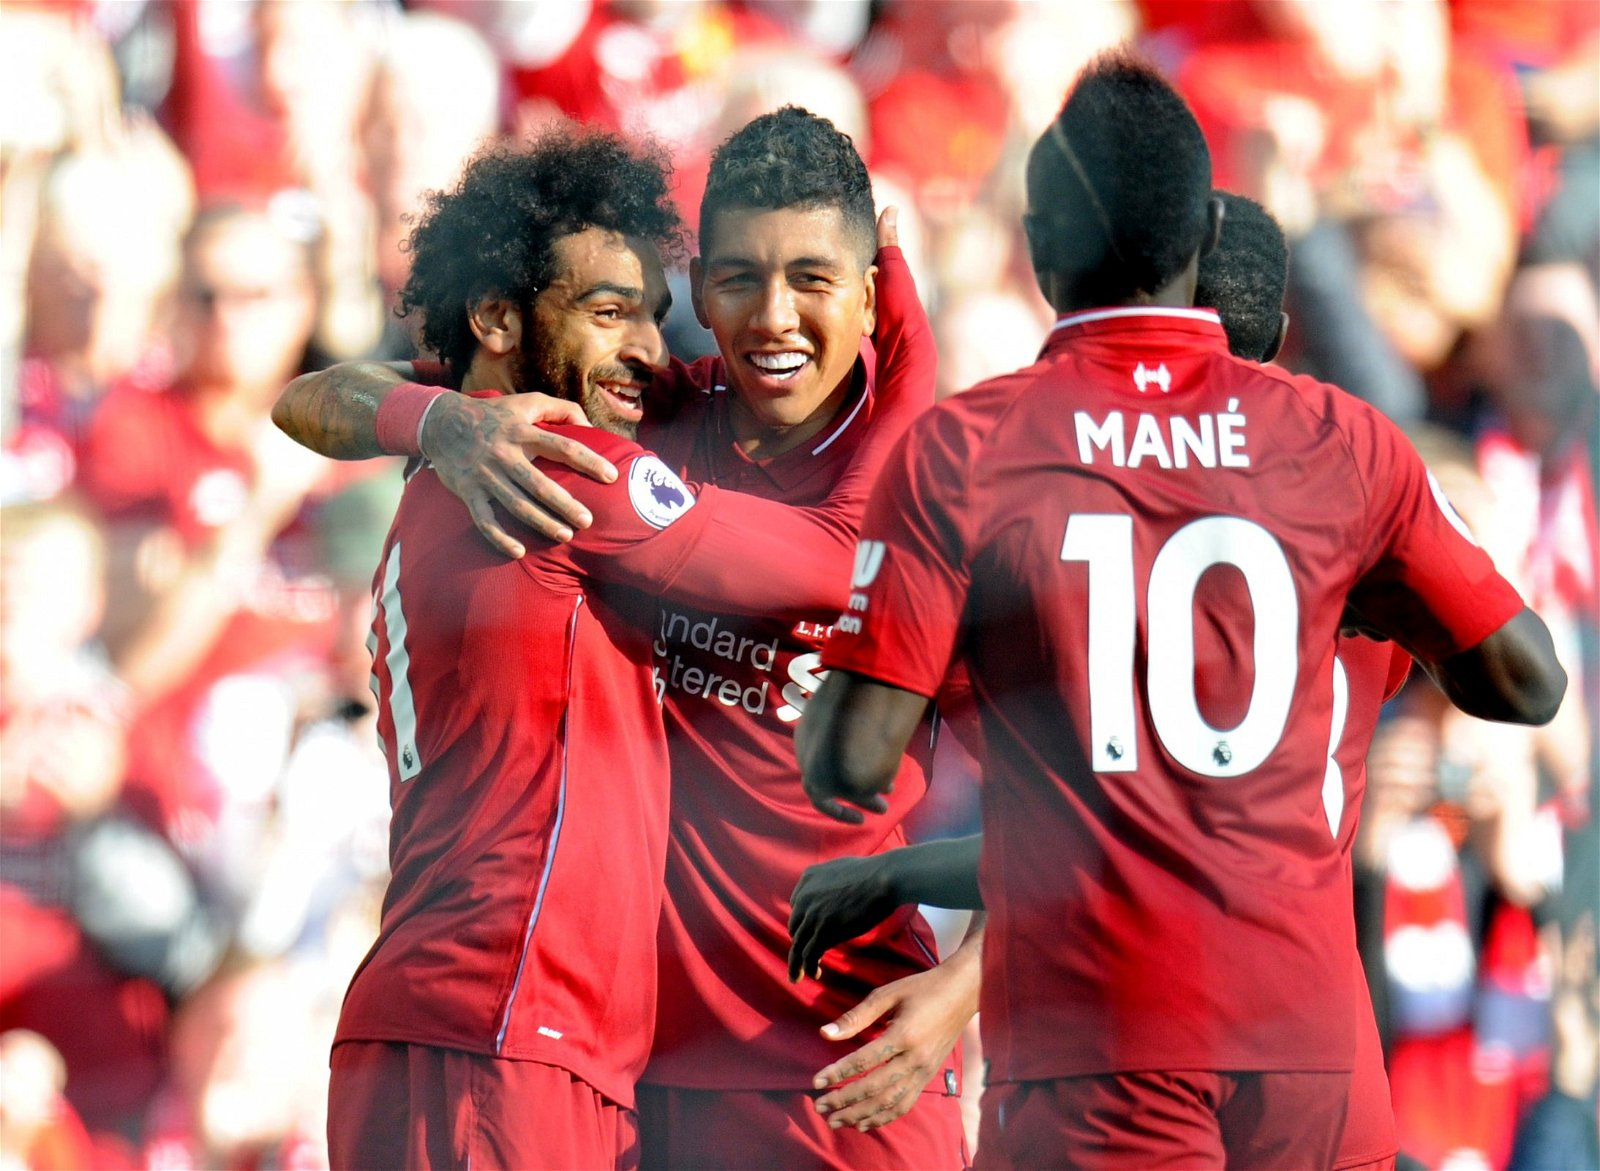 Mohamed Salah Sadio Mane and Roberto Firmino celebrate scoring - Becoming a problem: Klopp must consider last-gasp transfer to replace key LFC man – opinion